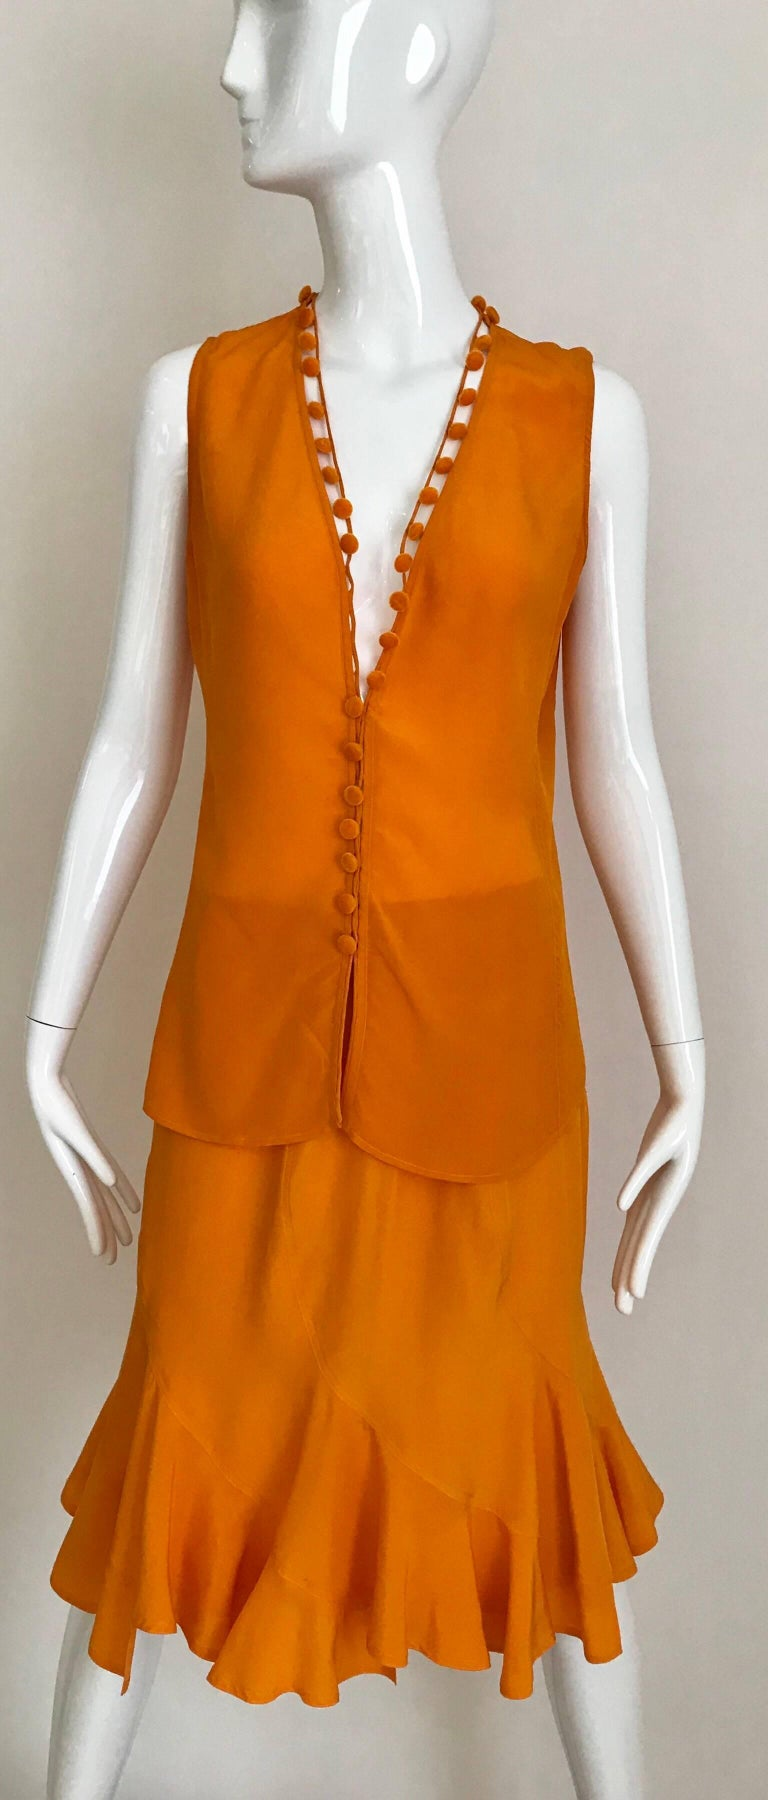 Beautiful summer Yves saint Laurent by tom ford ensemble. Sleeveless V neck blouse with dozens button and slightly flair skirt. Perfect for Beach cocktail party. Fit size 4/6 US Medium size